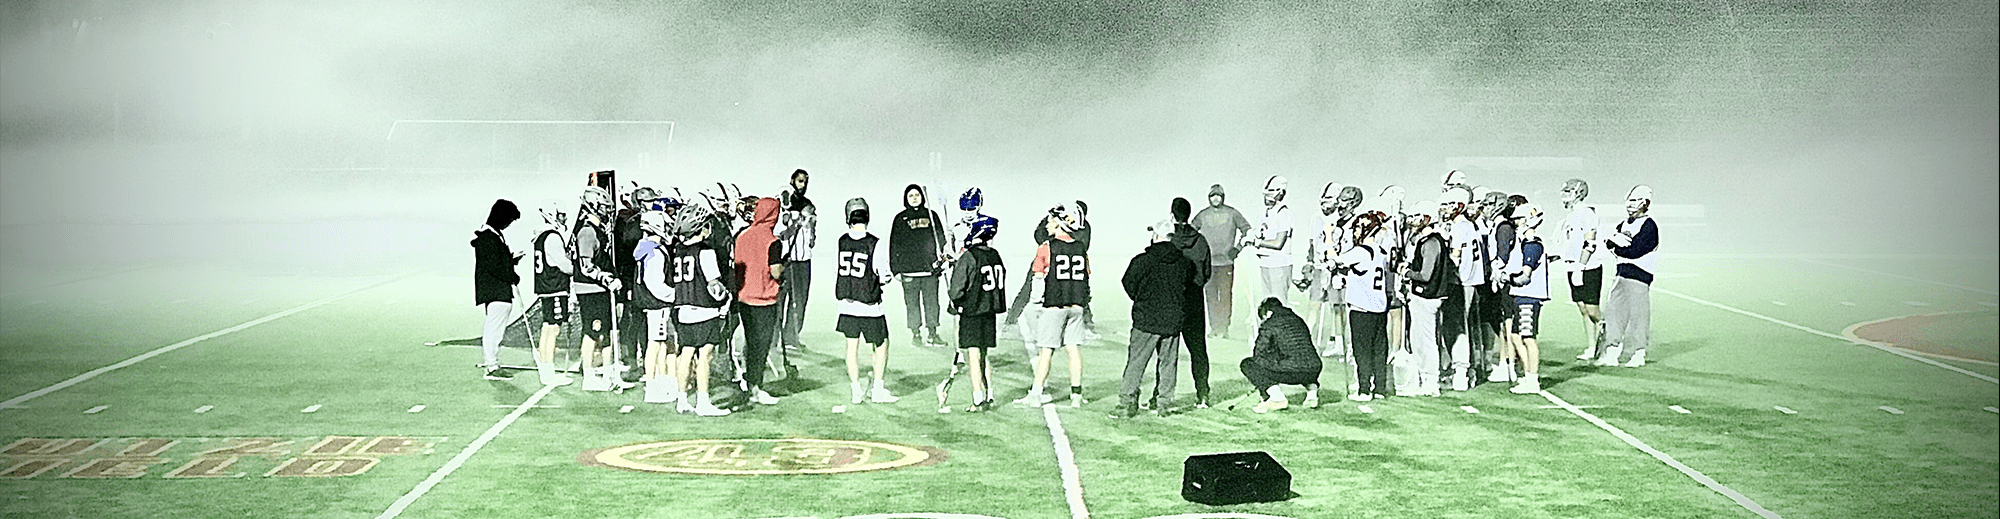 Lacrosse team standing together on a field